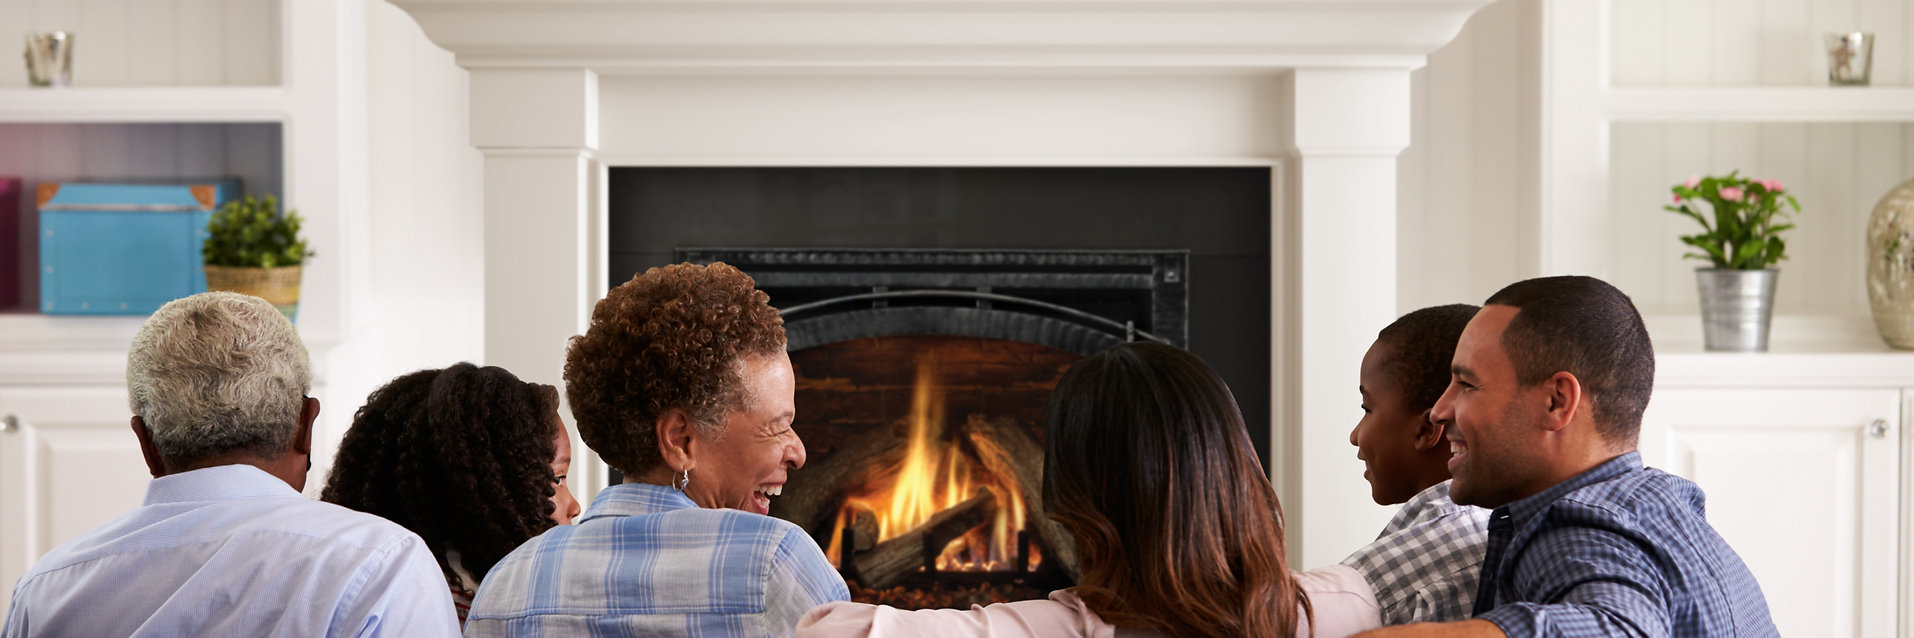 Fireplace Family.jpg